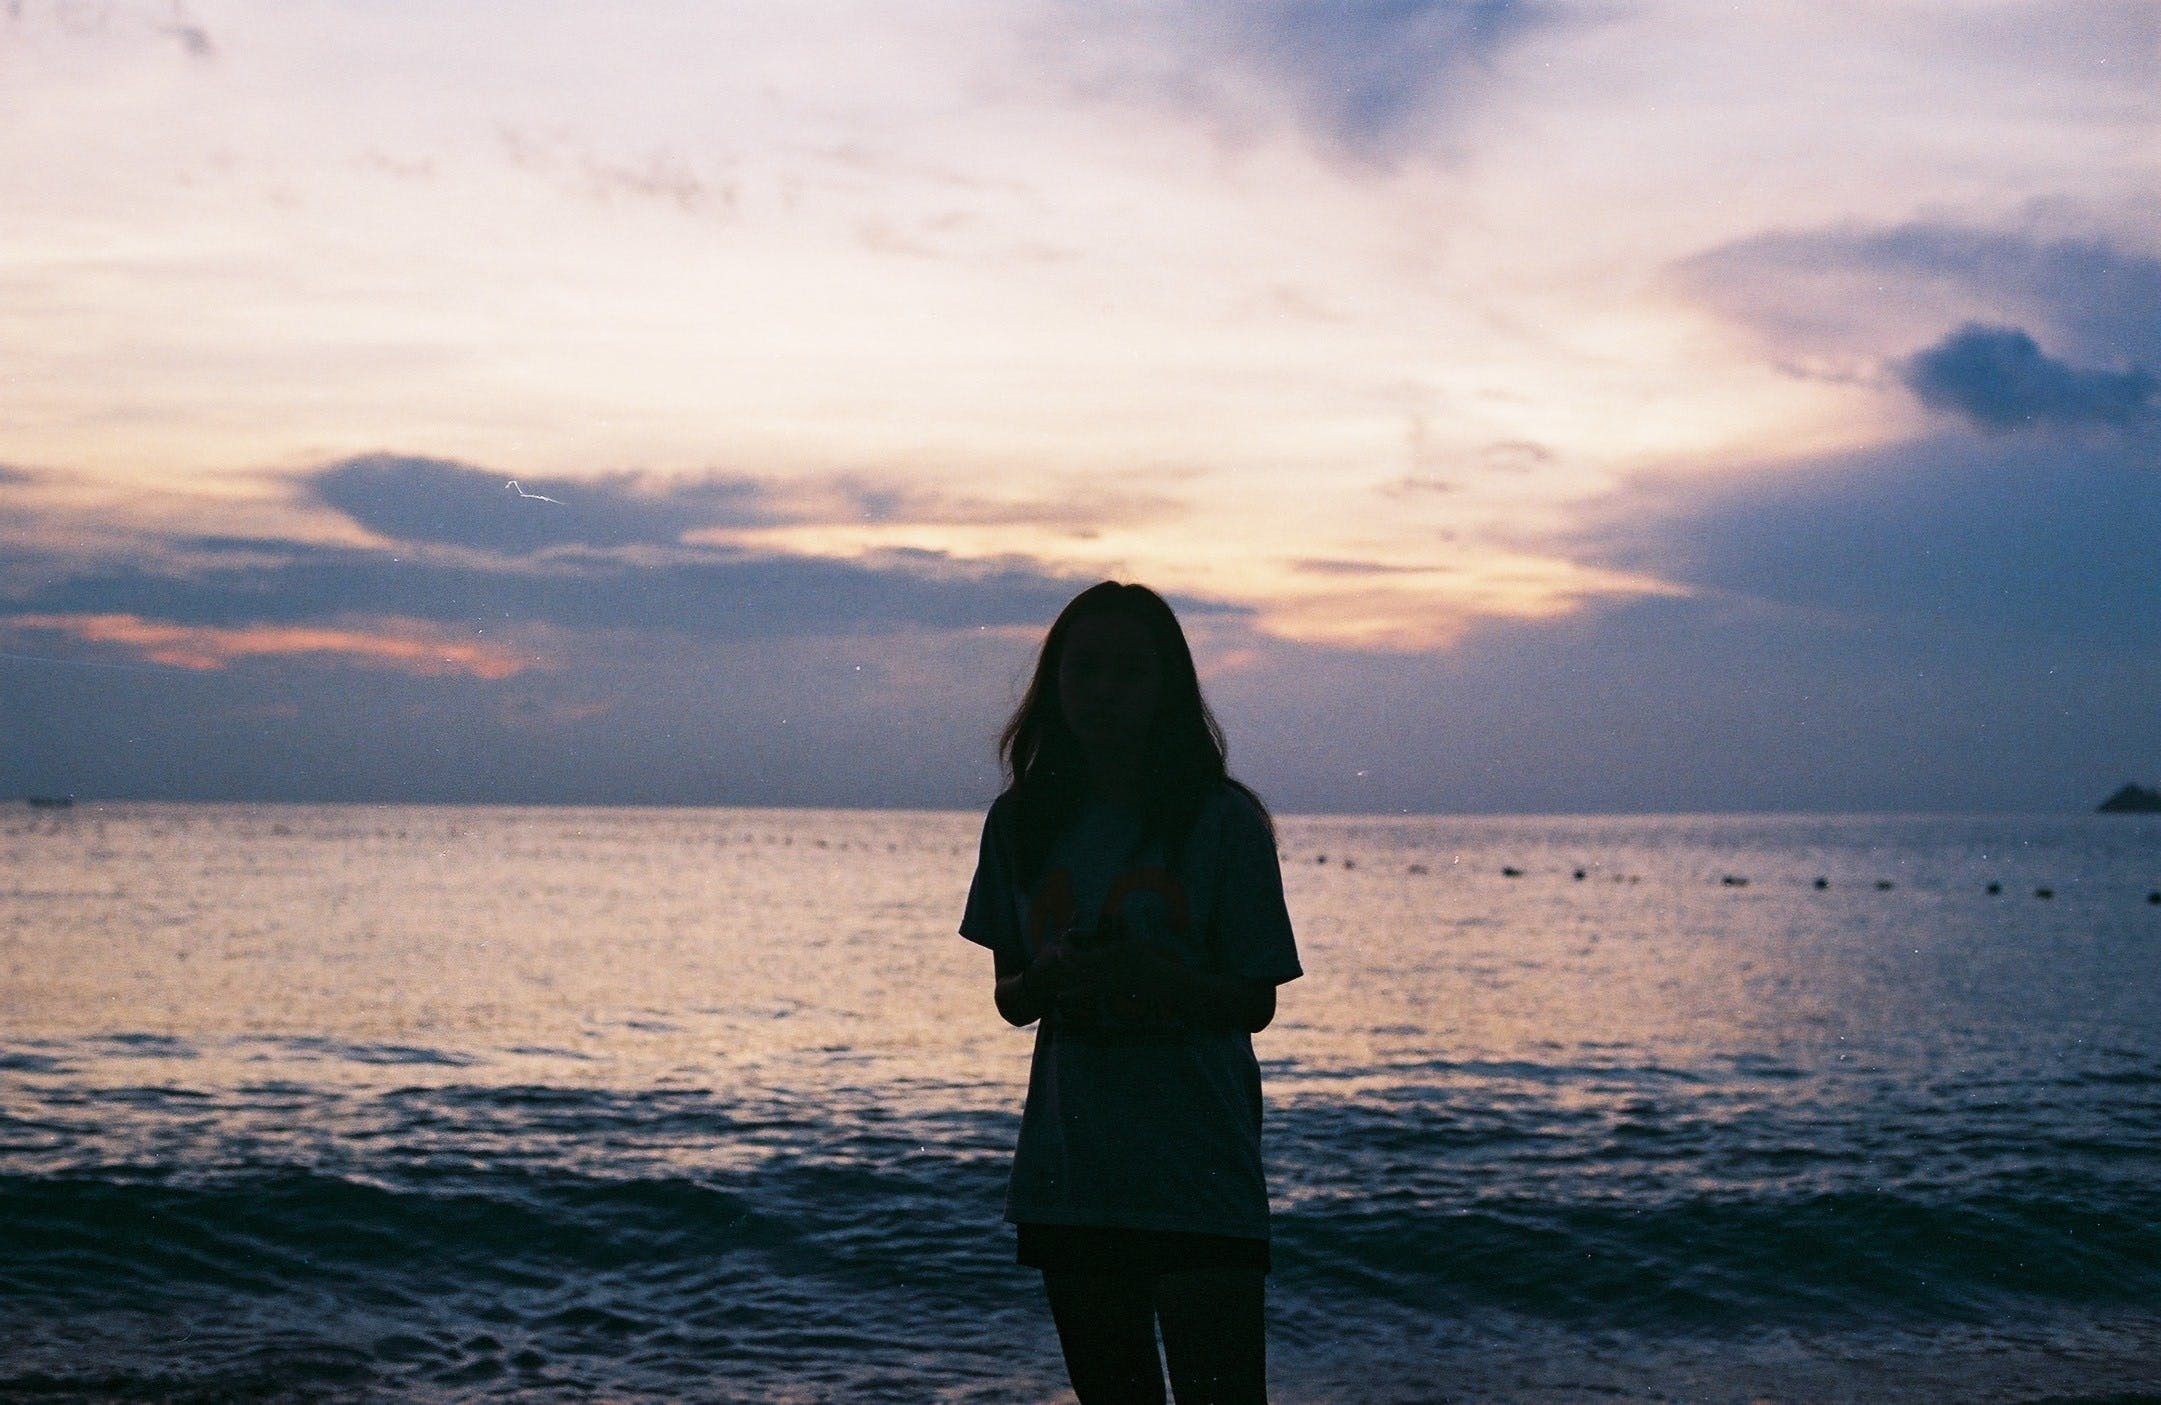 Silhouette of Woman Standing Near Large Body of Water